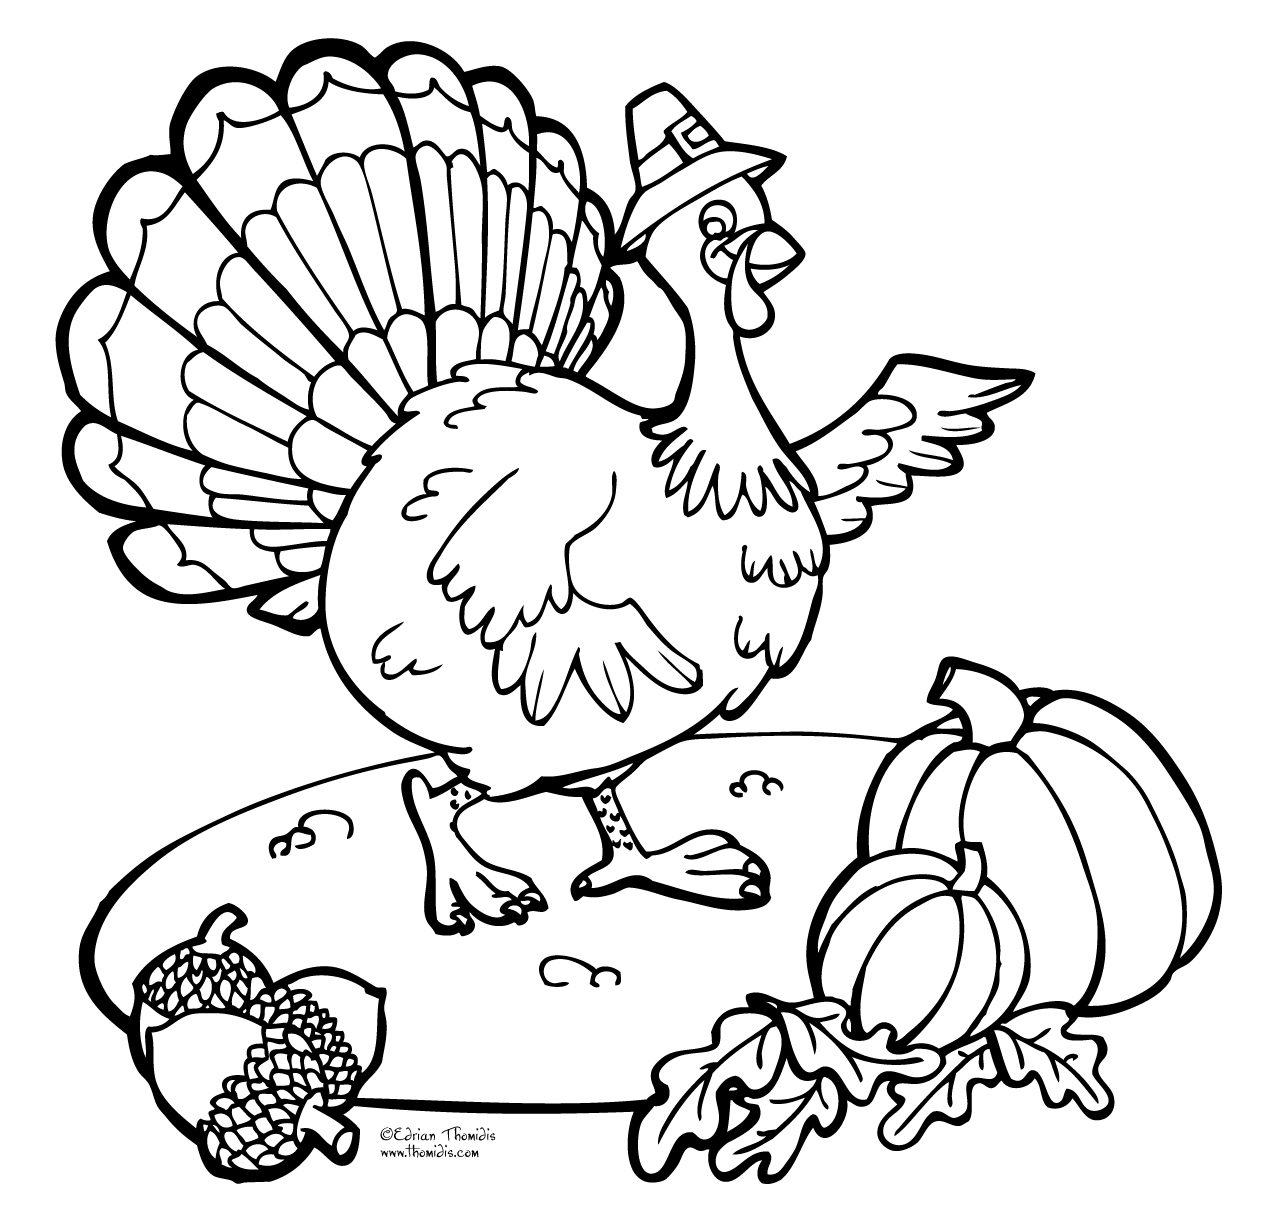 Uncategorized Thanksgiving Turkey Coloring printable thanksgiving turkey coloring page coloringpagebook com page